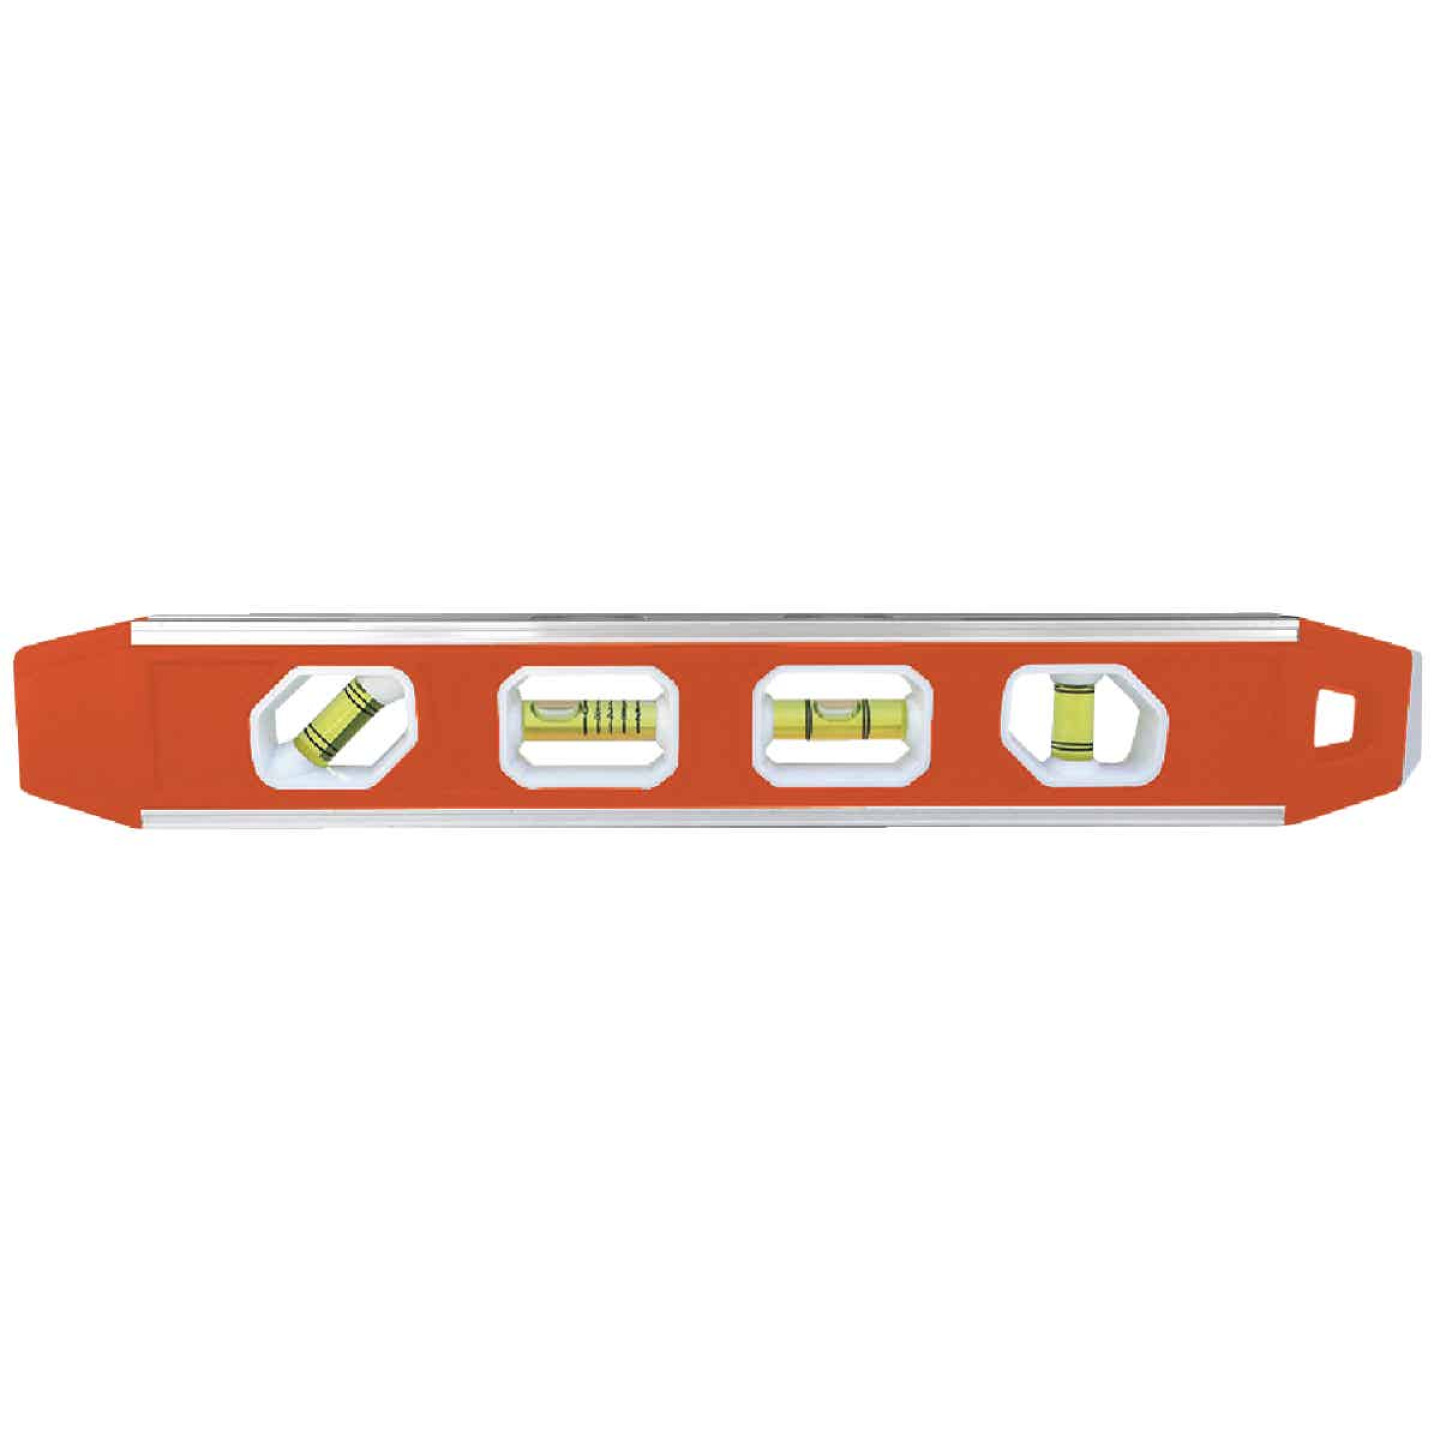 Johnson Level 12 In. Aluminum Reinforced Magnetic Torpedo Level Image 1